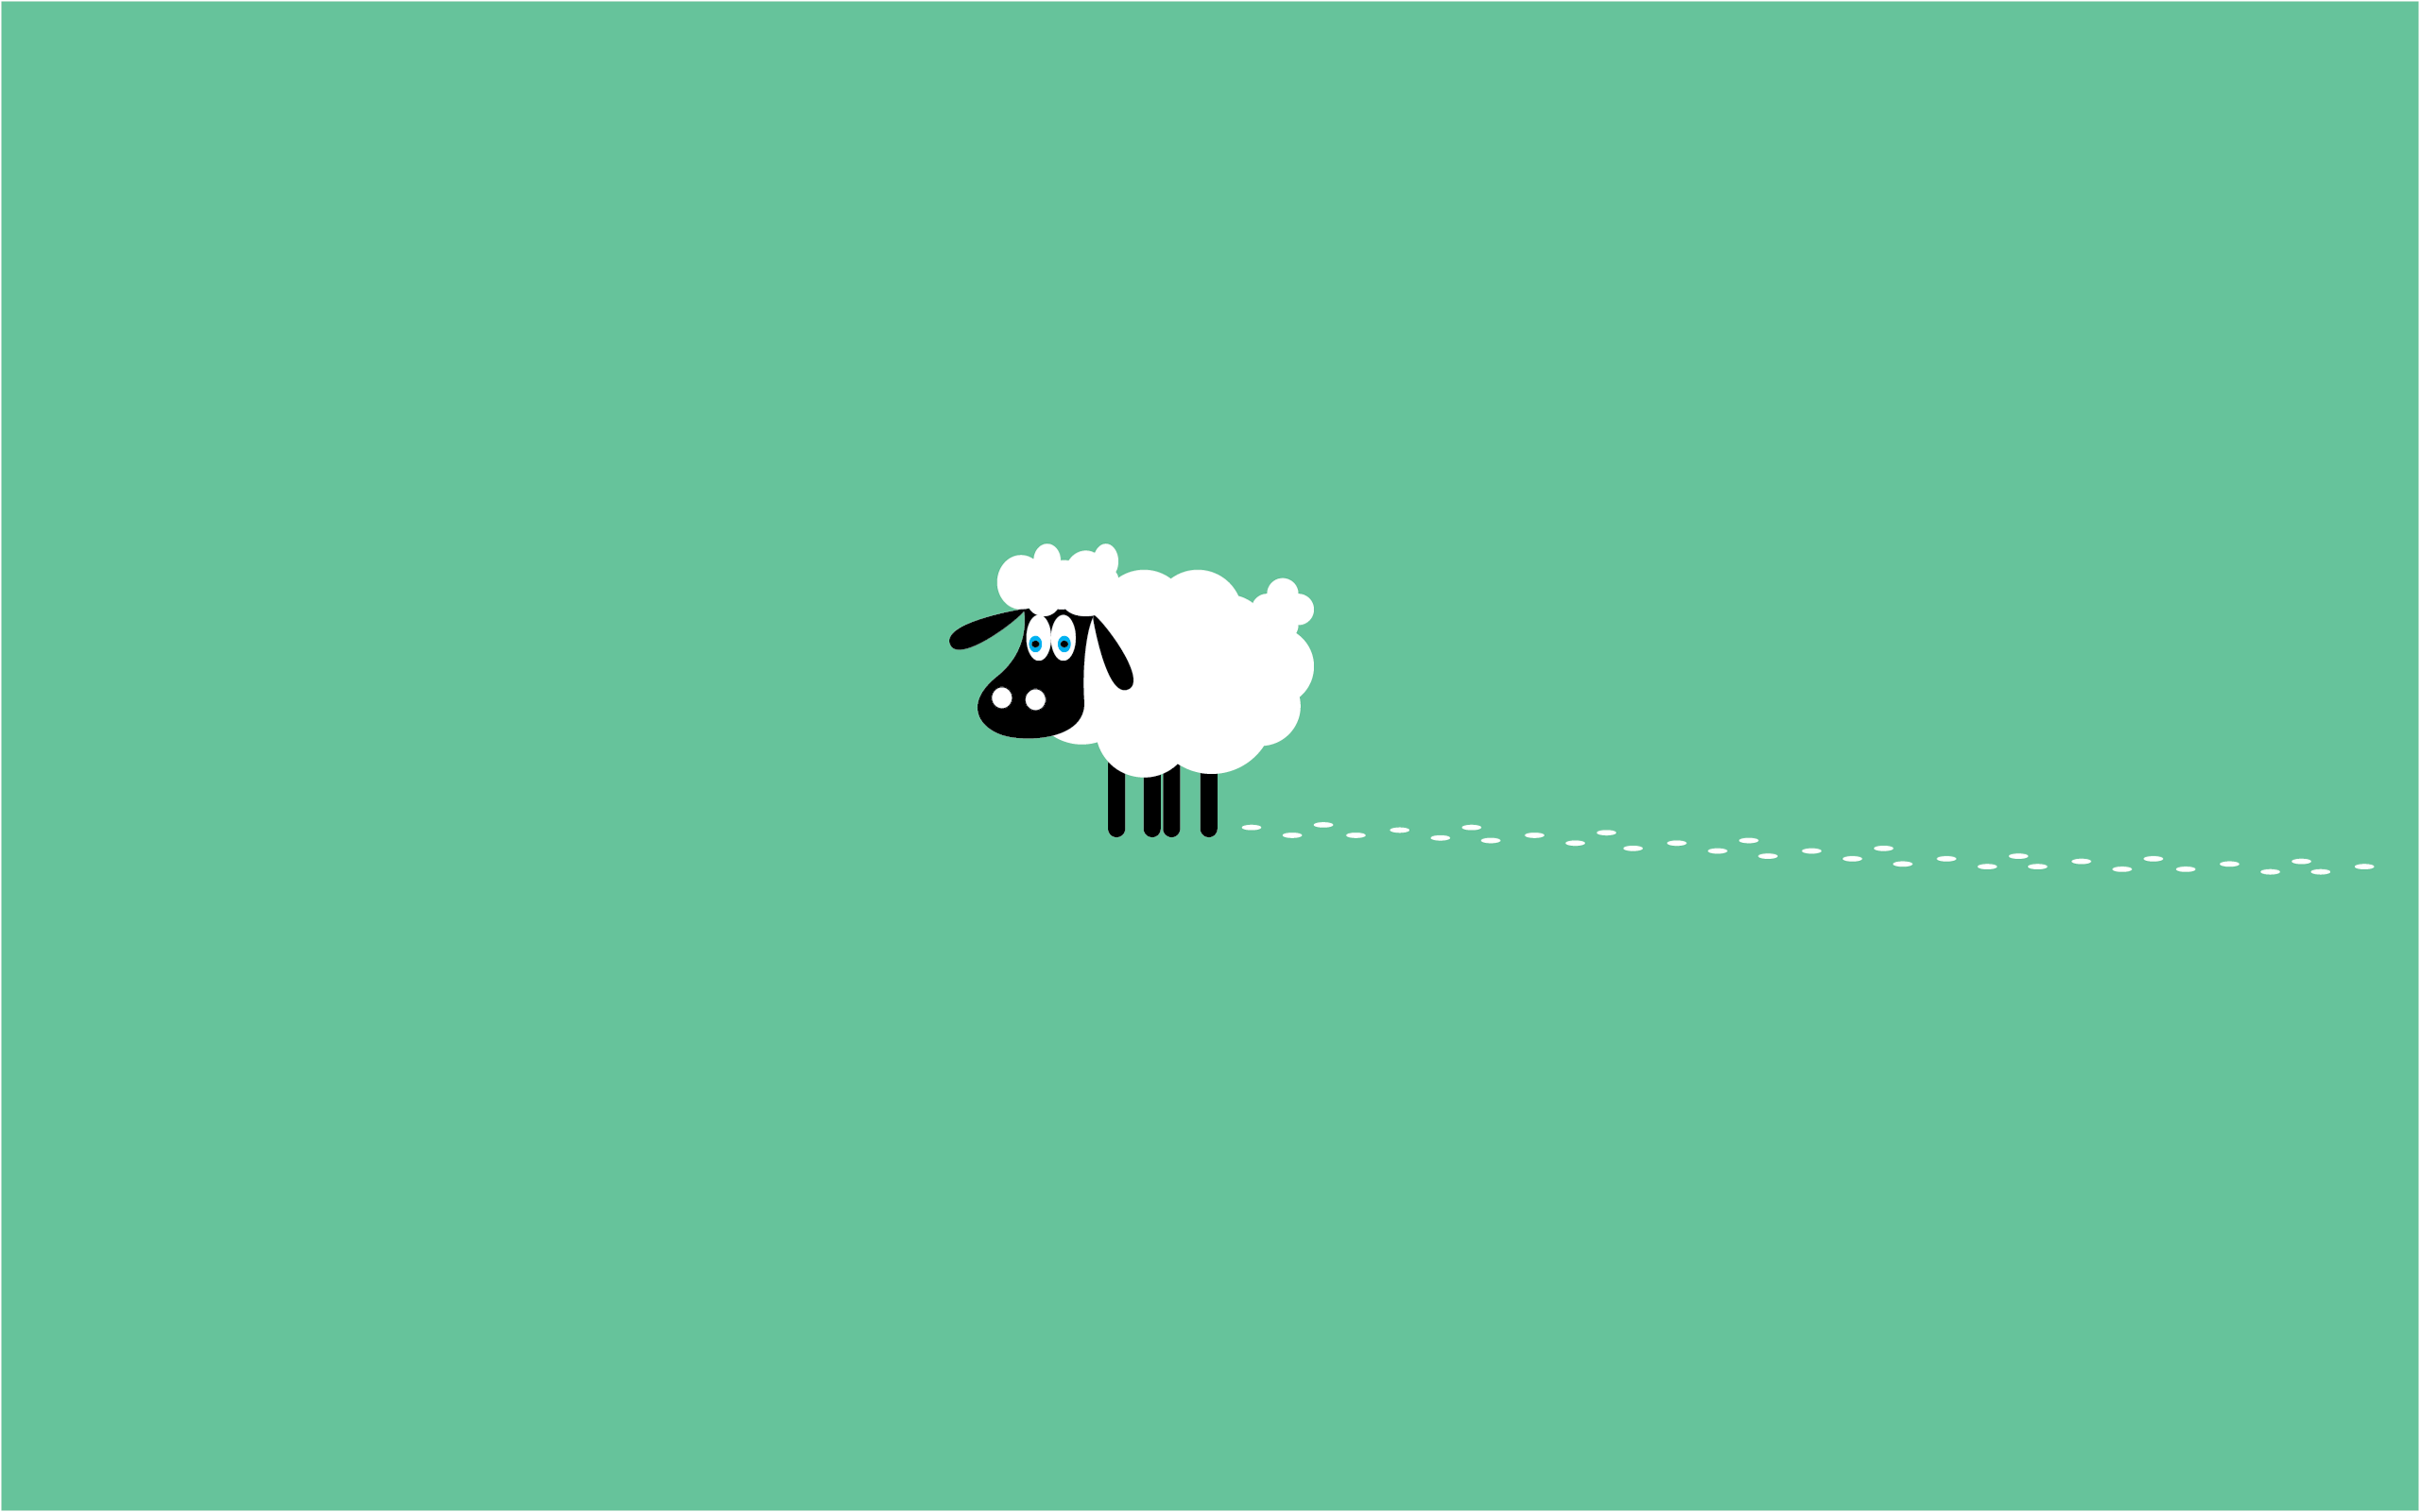 Cute Sheep Drawing Tumblr Sheep Images Sheep Hd Wallpaper And Background Photos